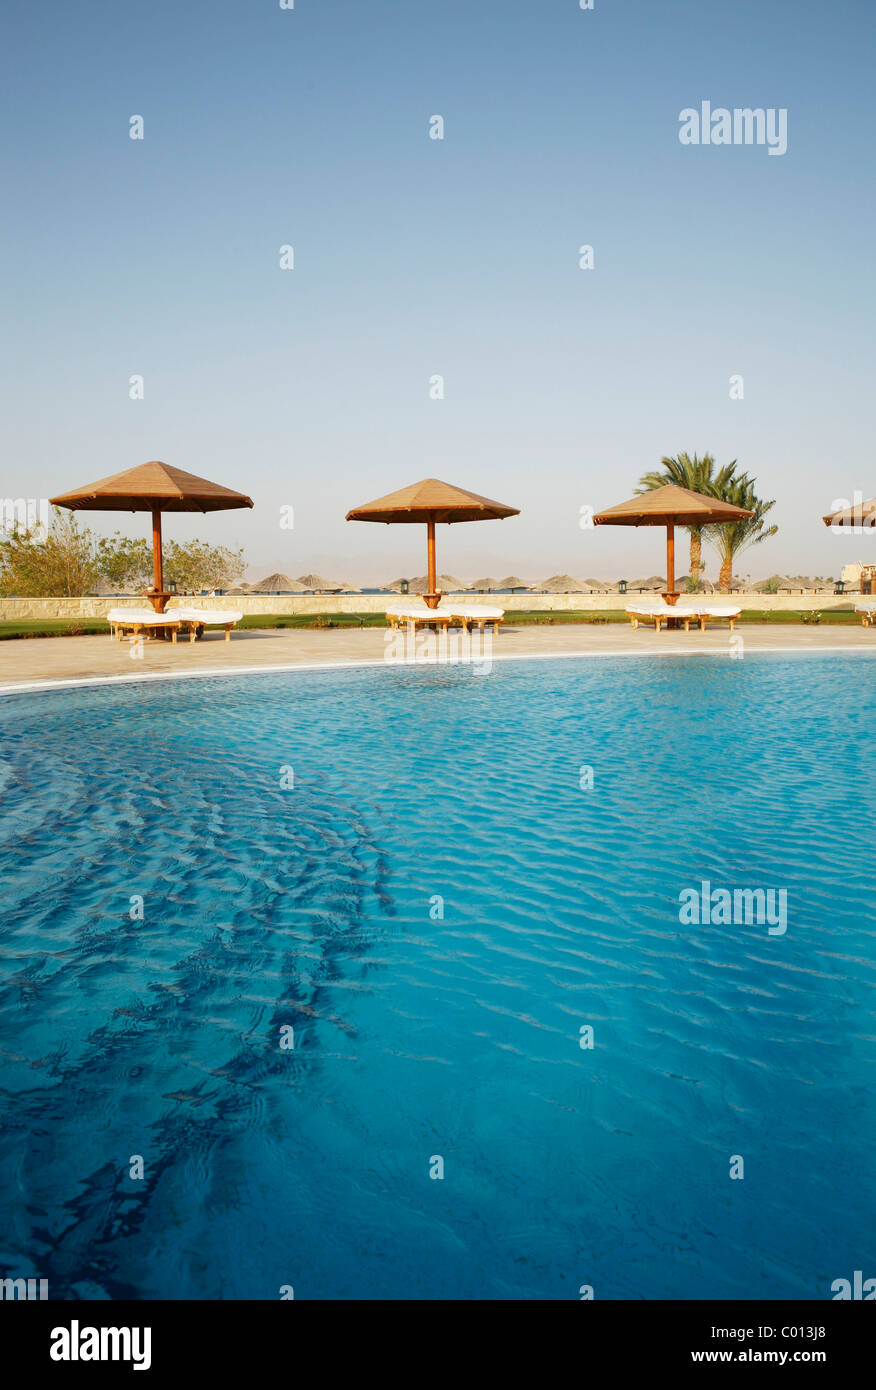 Pool with a blue water surface, sun lounges and sunshades, Soma Bay, Red Sea, Egypt, Africa Stock Photo